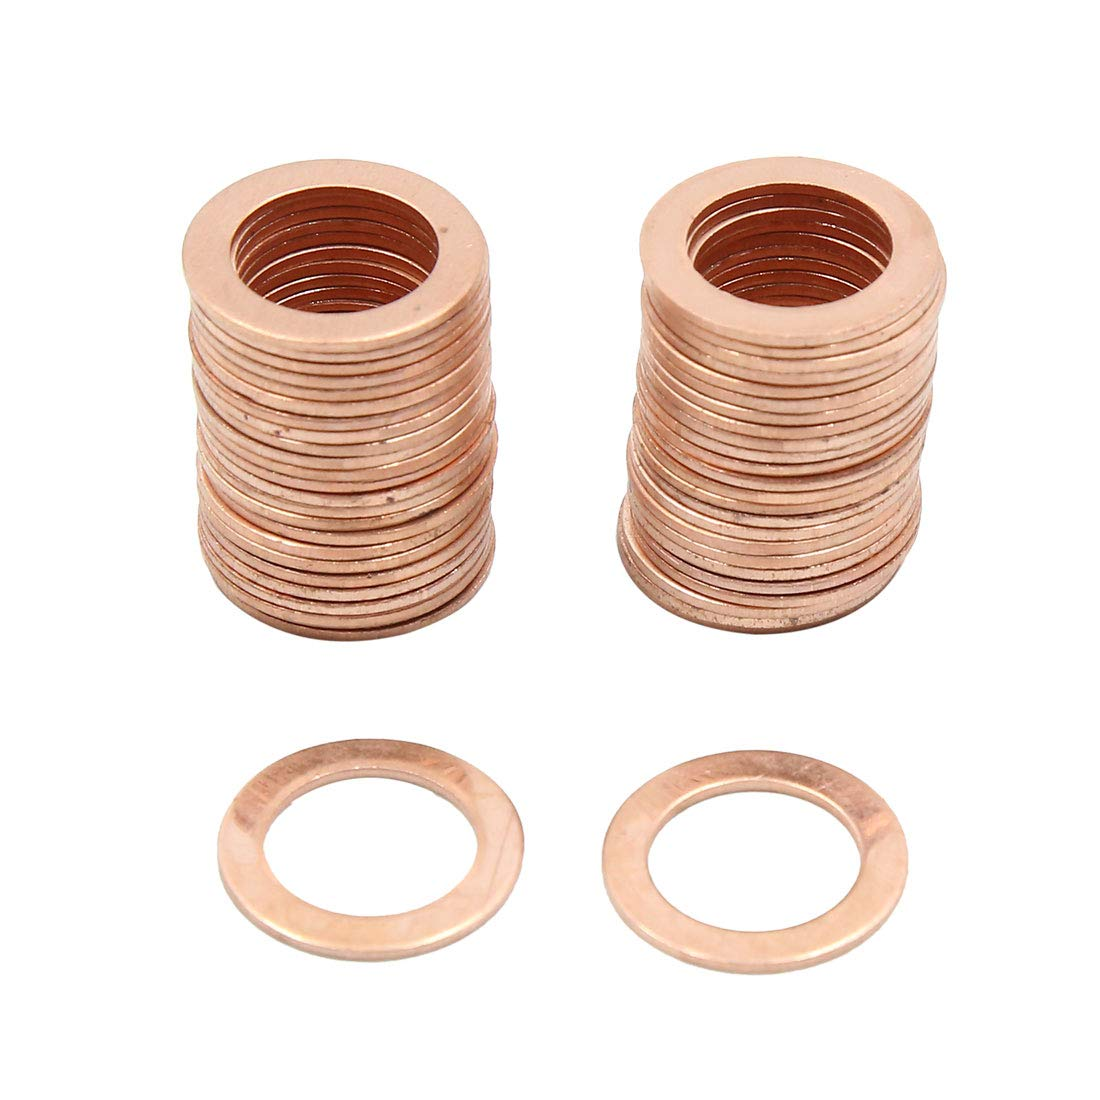 X AUTOHAUX 13.5mm Inner Dia Copper Flat Washers Car Sealing Gaskets Rings 50pcs